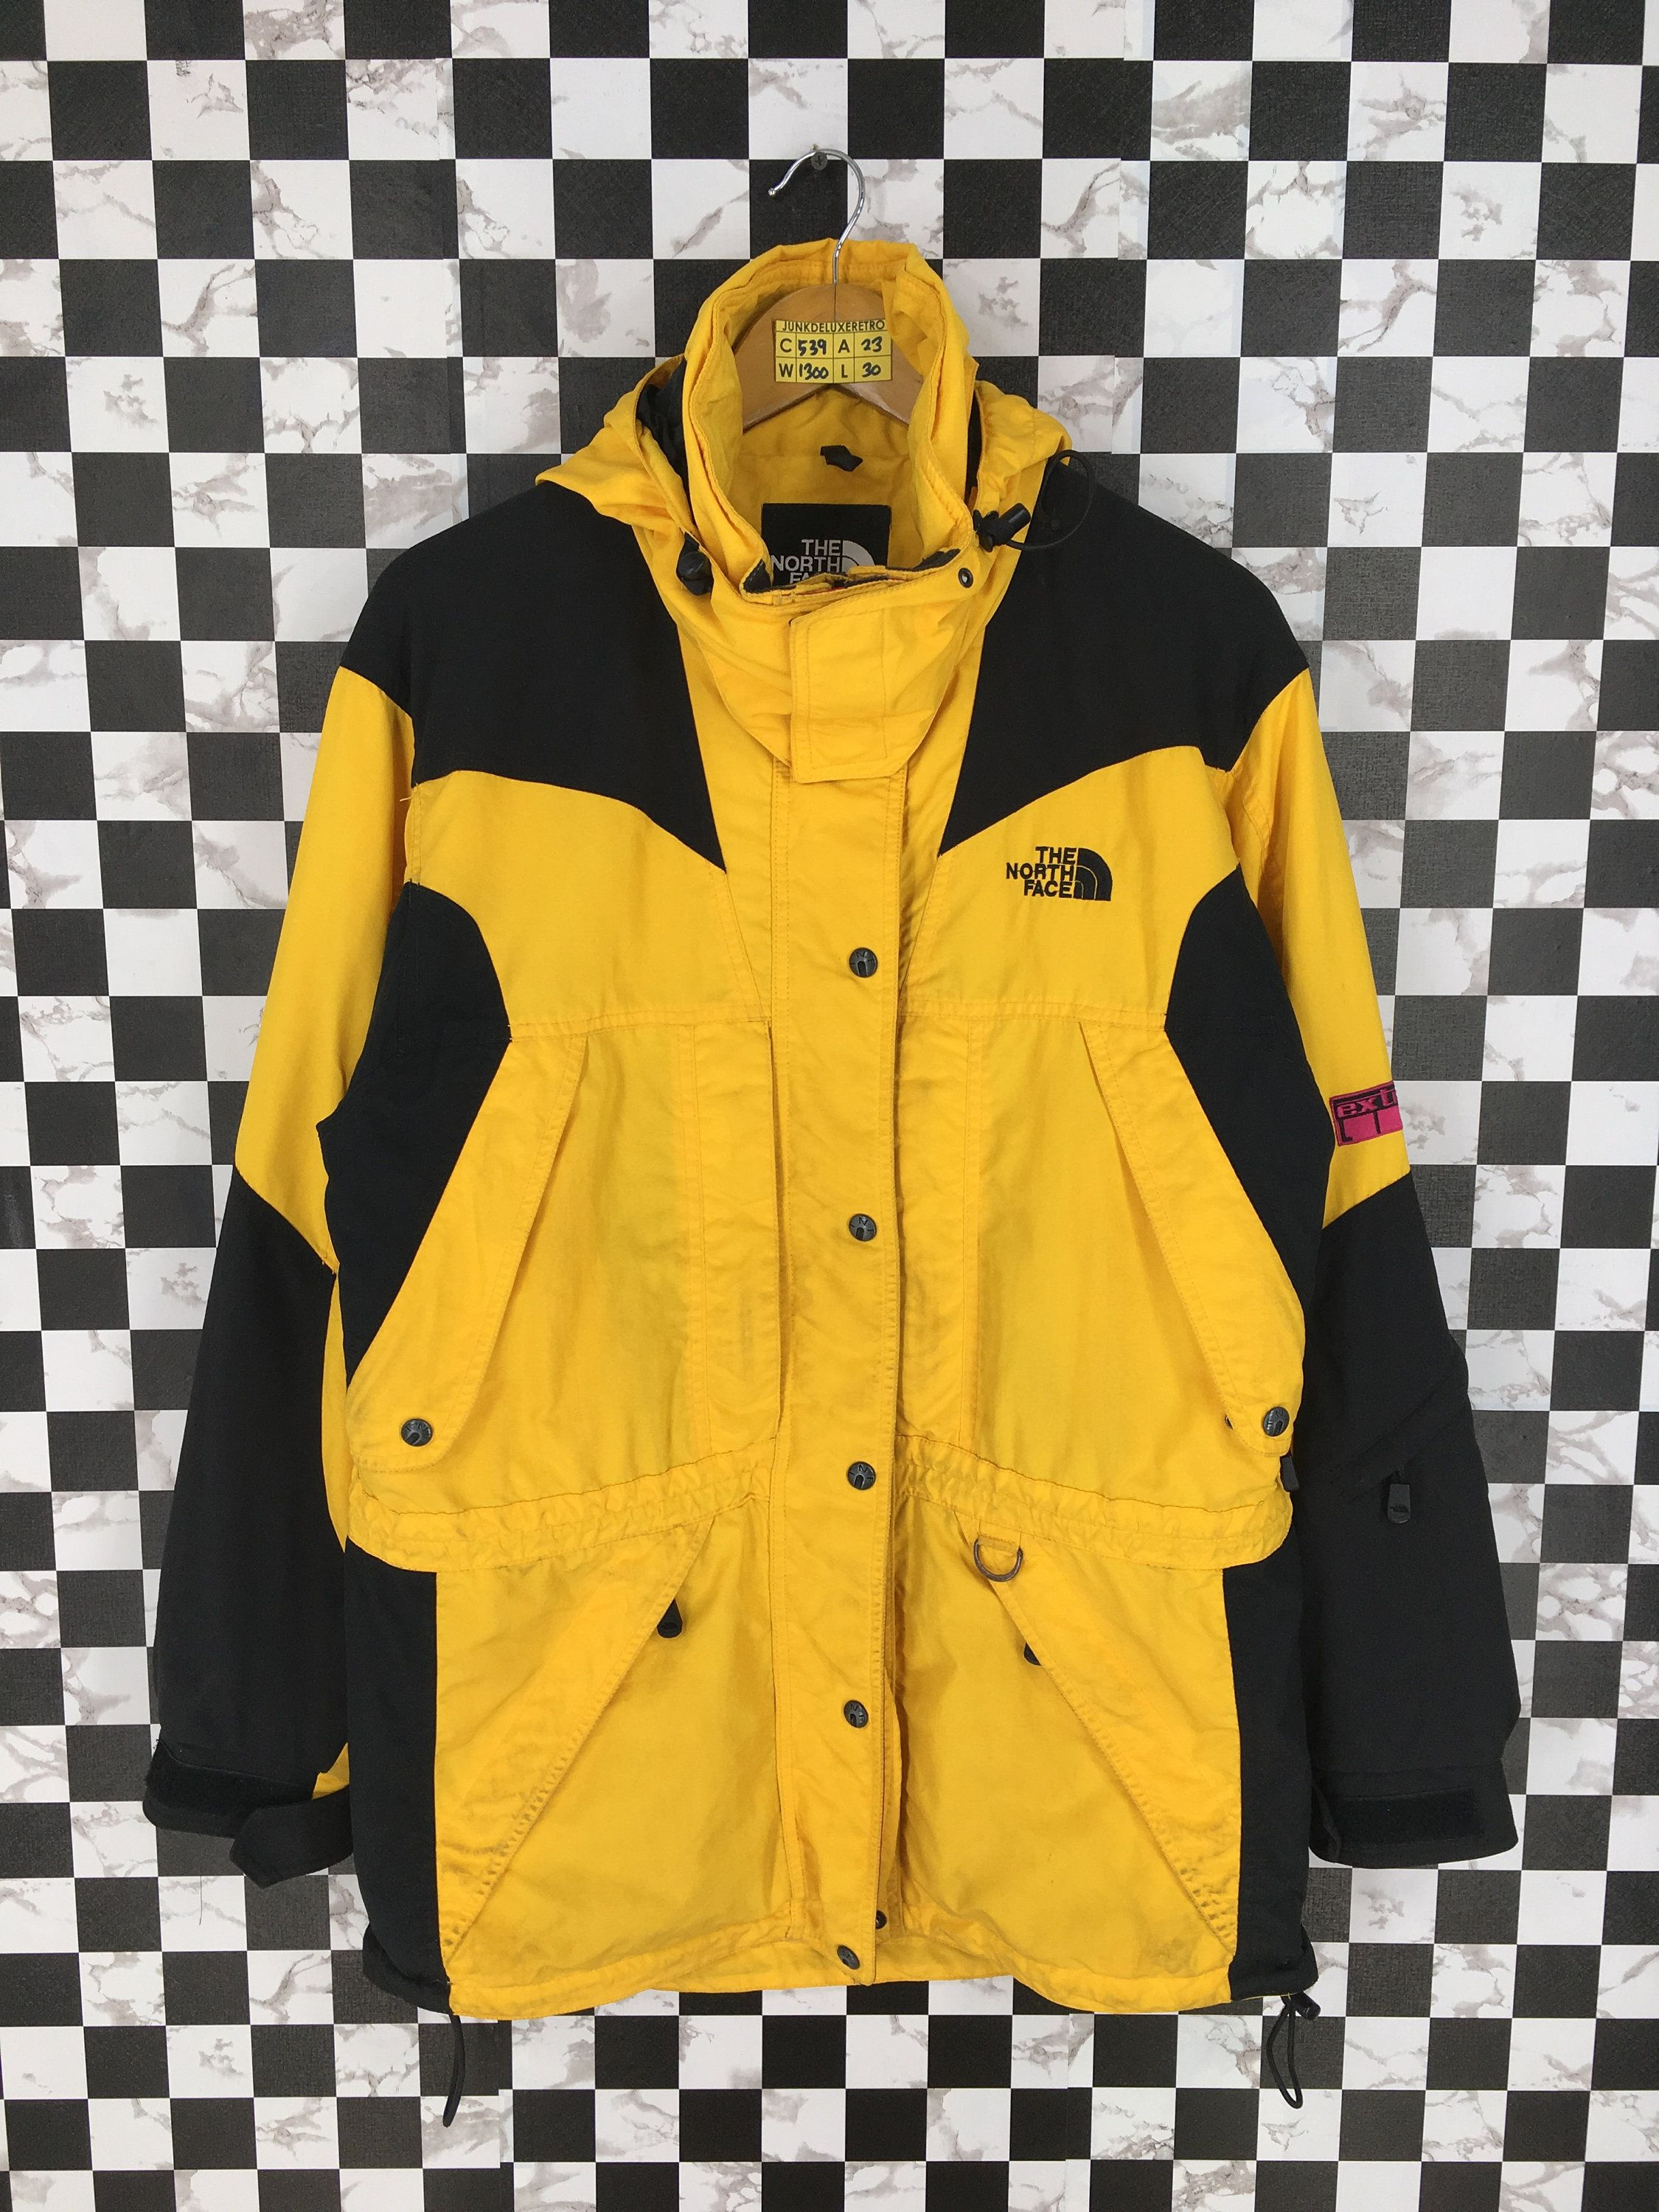 Vintage The North Face Jacket Mens Large North Face Ski Wear Yellow Jacket Hoodie North Fa North Face Jacket North Face Jacket Mens The North Face Jackets Mens [ 3000 x 2250 Pixel ]